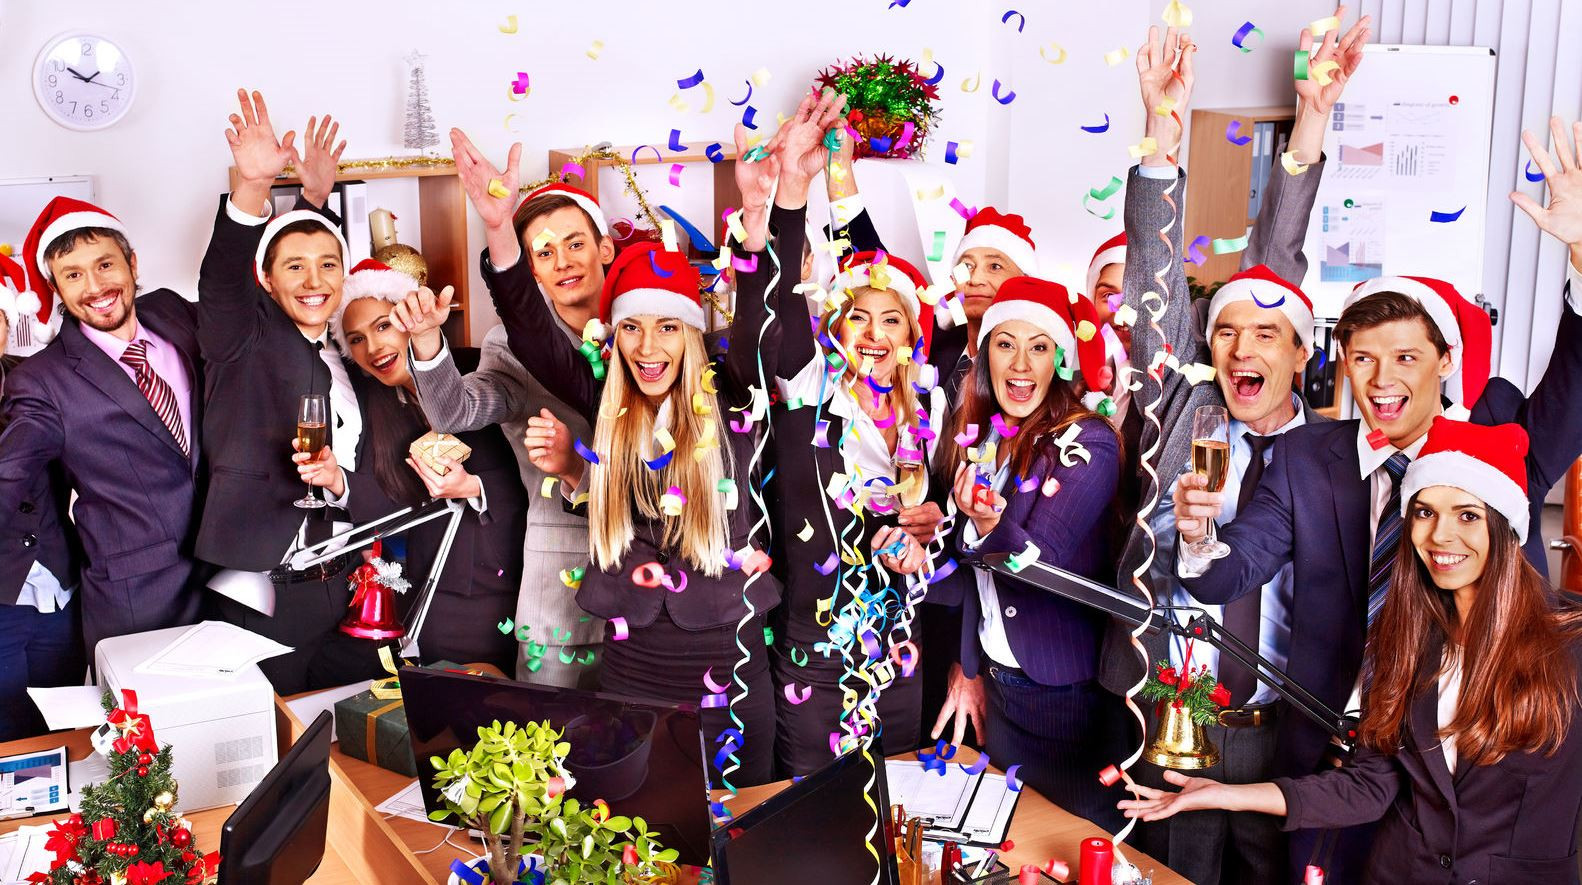 Staff Christmas Party Ideas  Christmas Party For Employees What Are The Tax